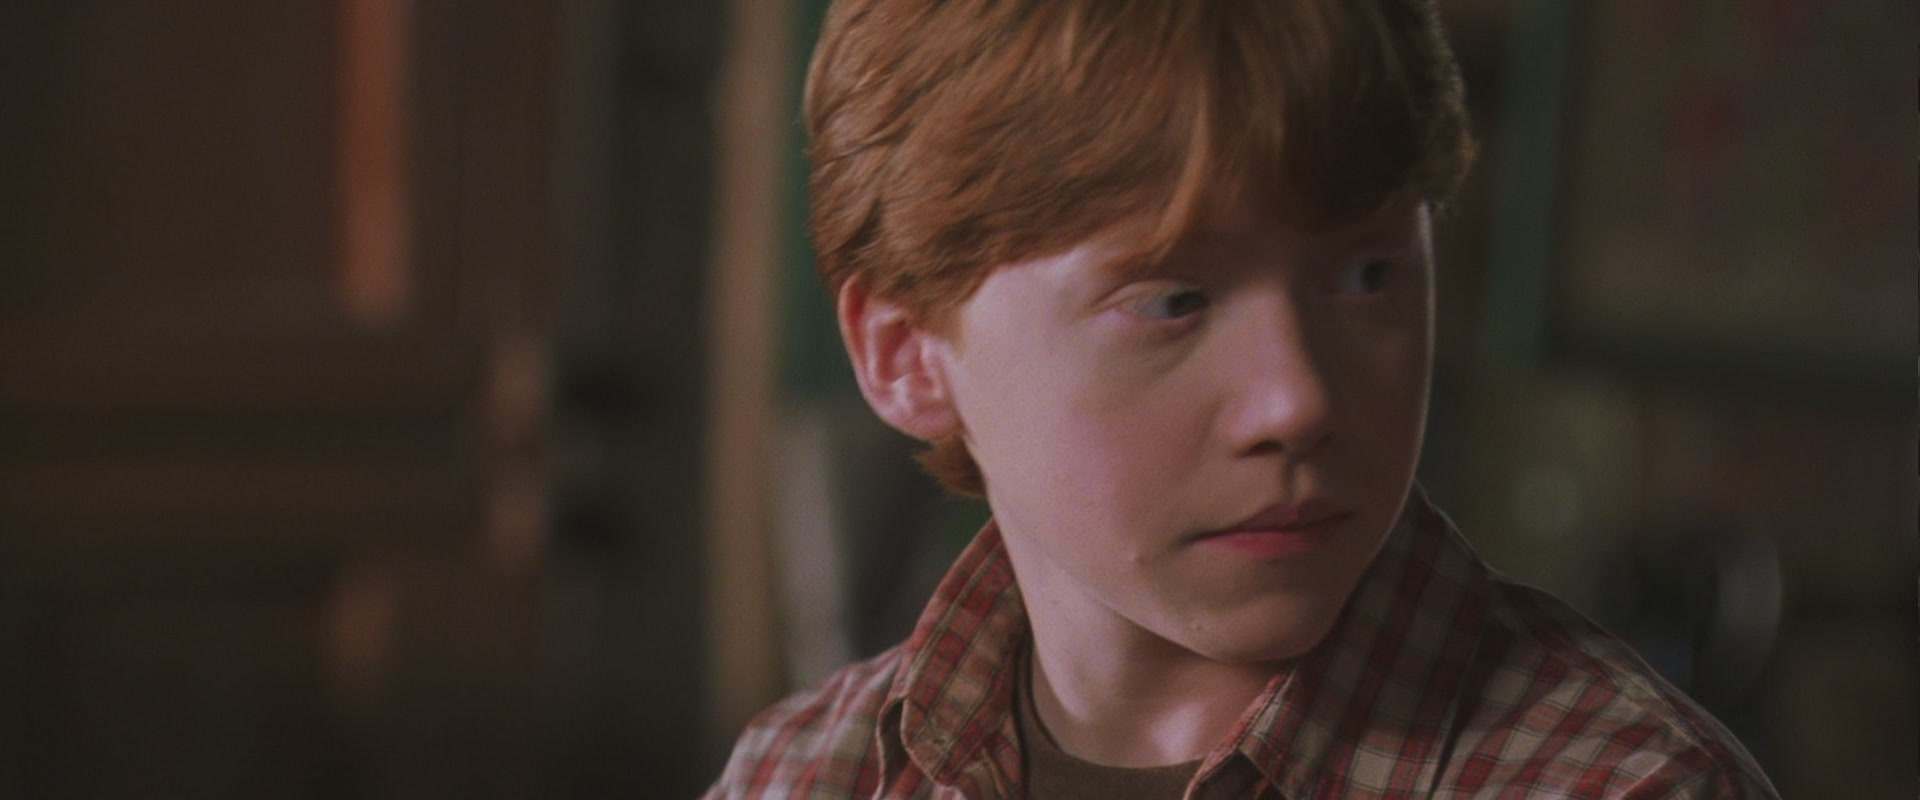 image harry potter and the chamber of secrets ronald weasley full resolution